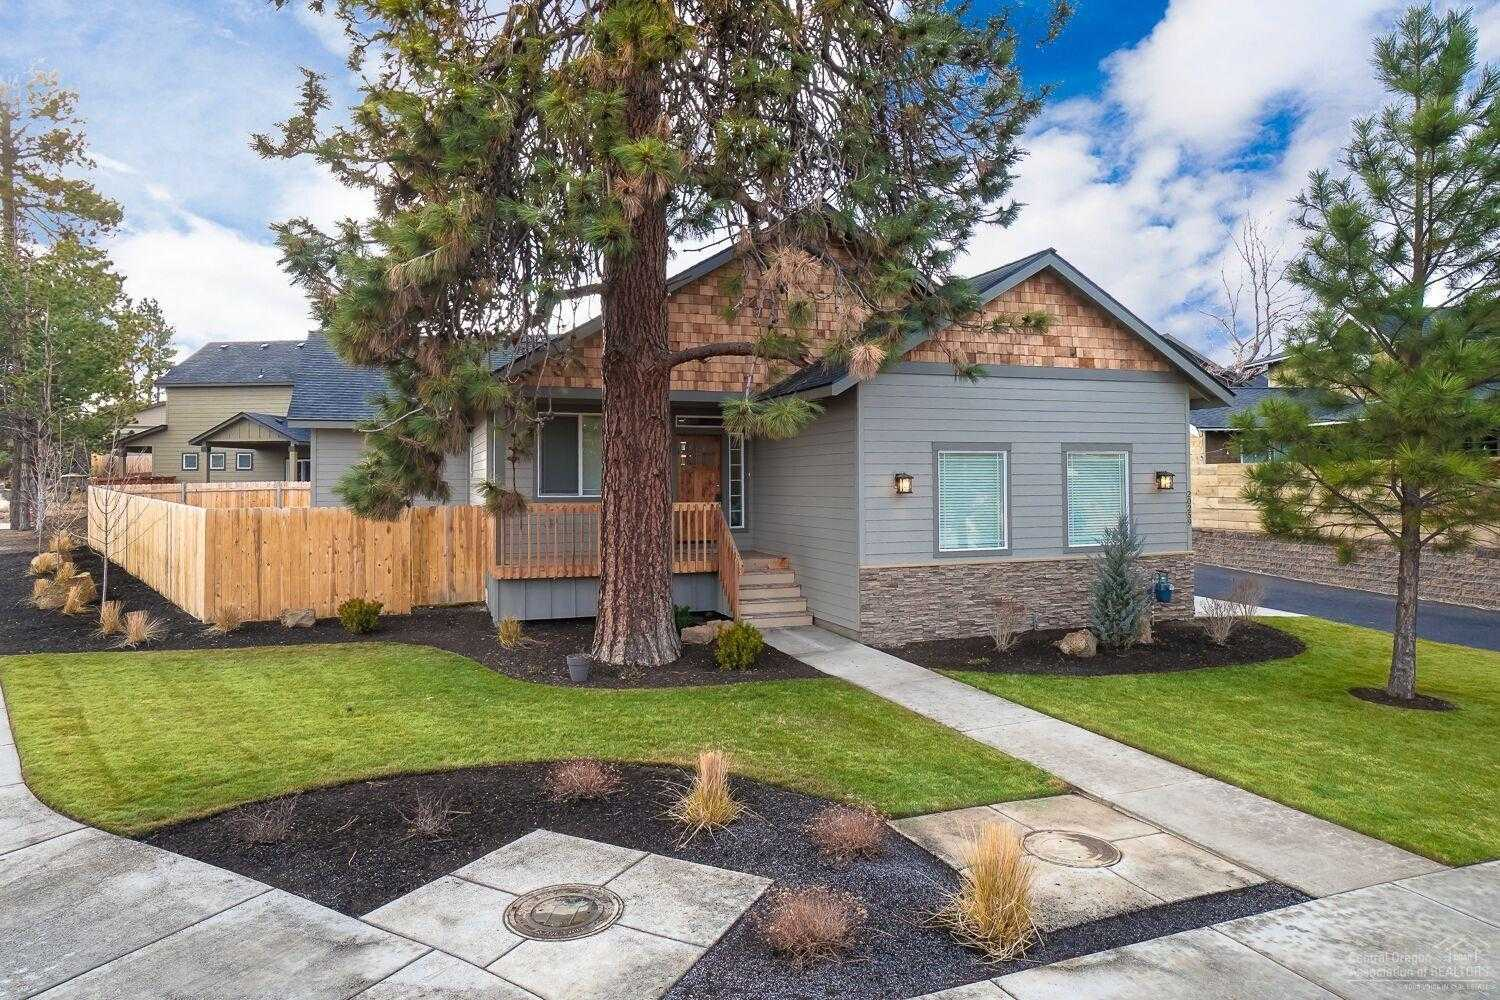 $450,000 - 3Br/2Ba -  for Sale in Bend